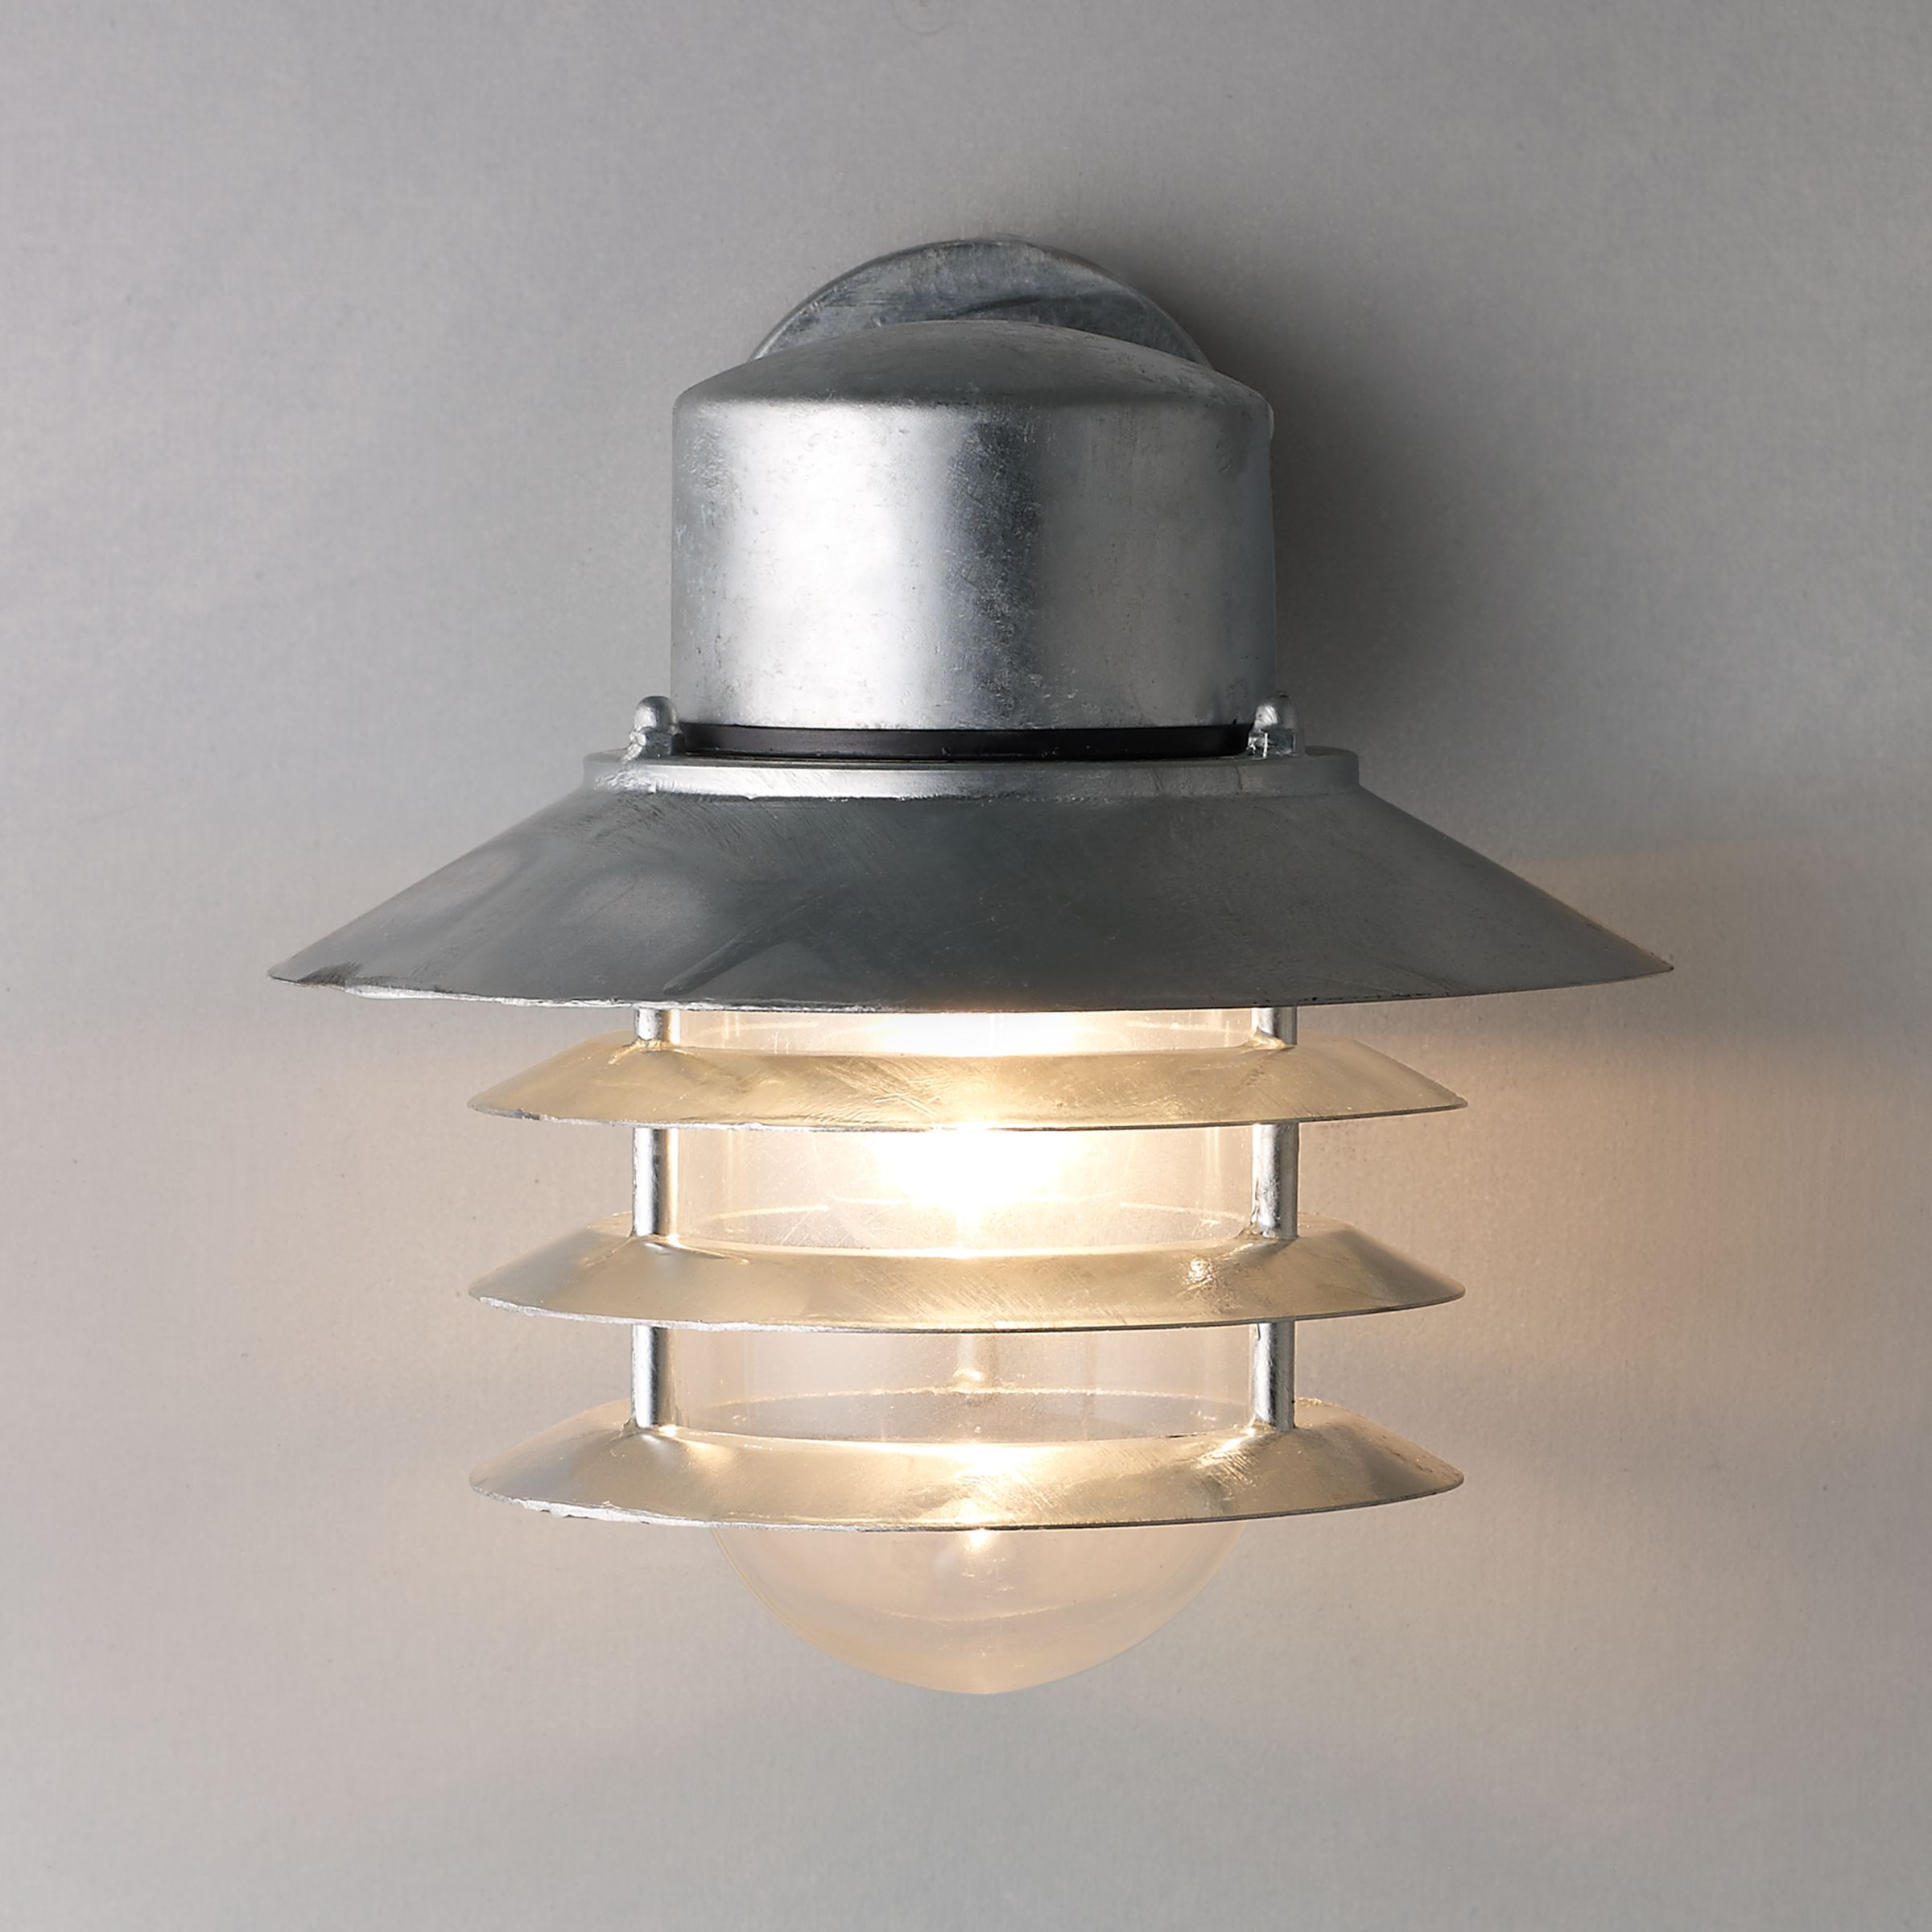 Nordlux Nordlux Vejers Outdoor Wall Light, Galvanised Steel